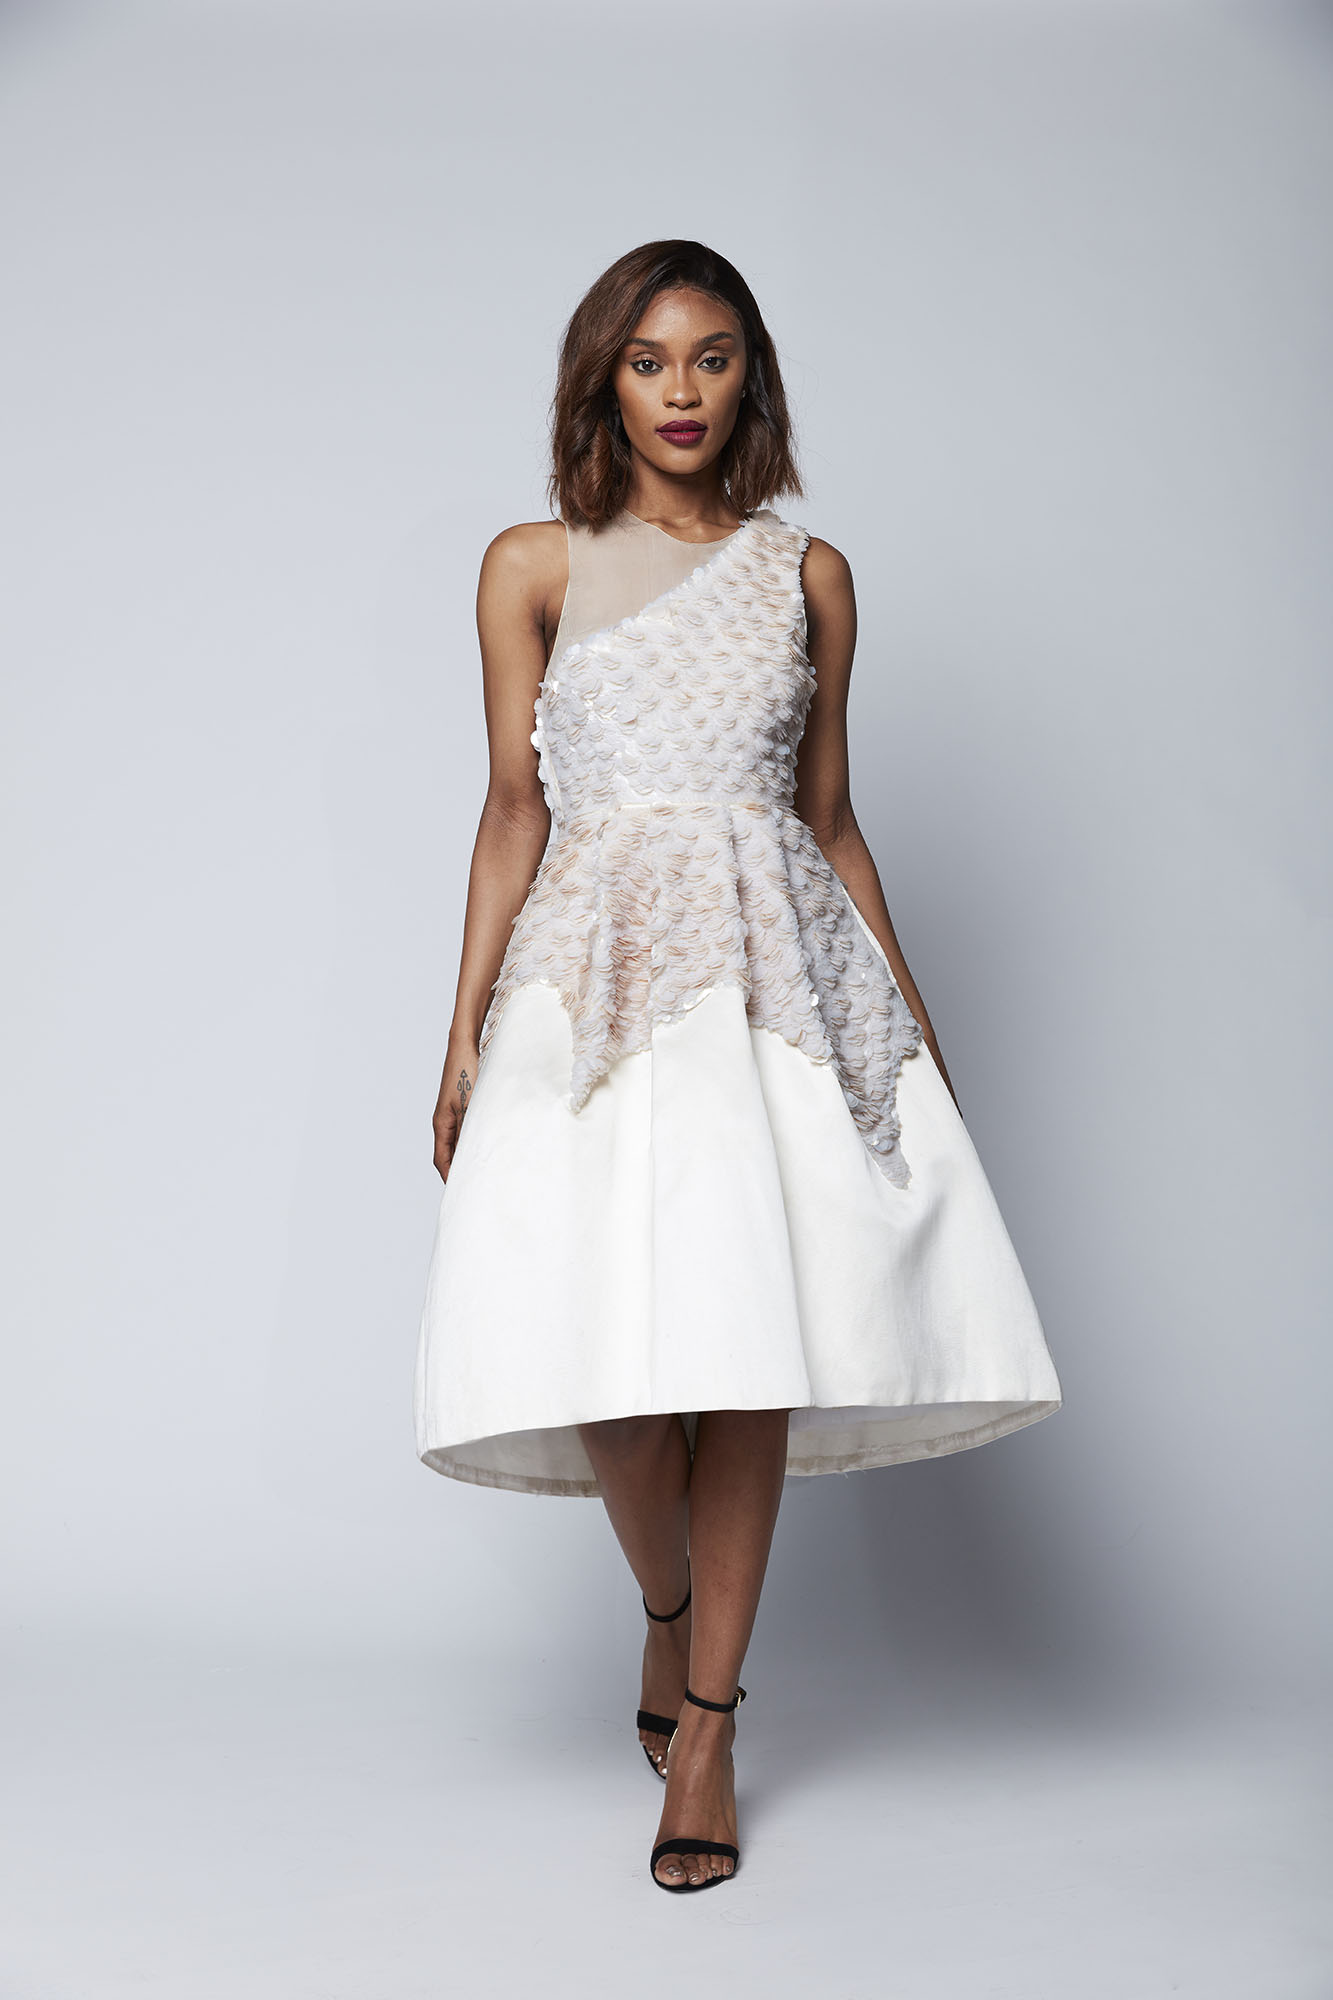 This dramatic tea length dress of layered opaline sequins creates a show stopping look that is perfect for the most glamorous of occasions and ideal for the bride who wants to dance the night away.